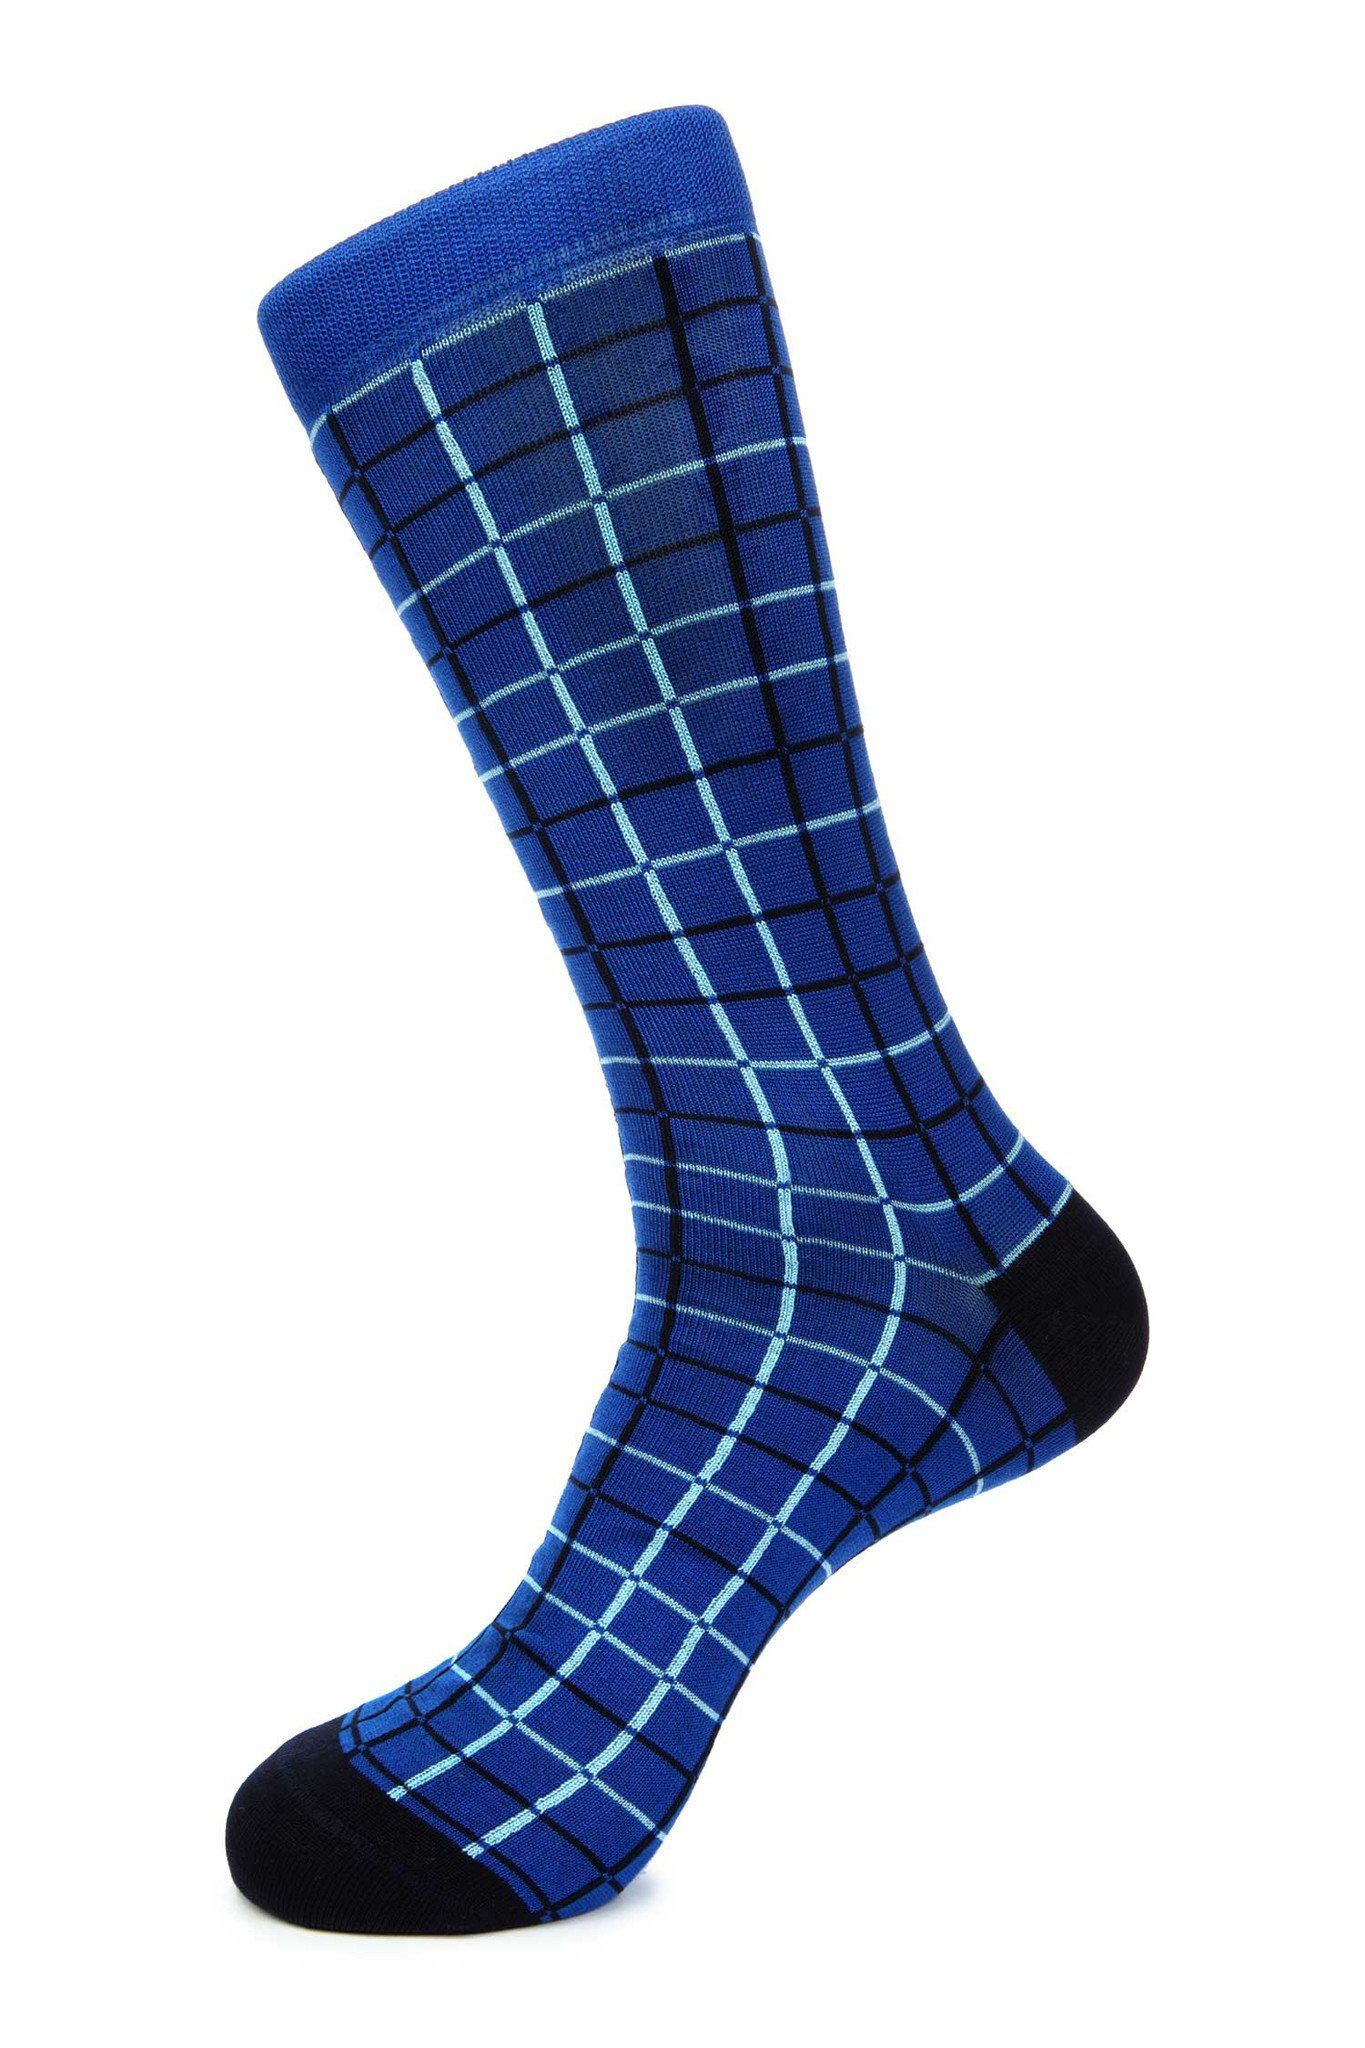 JL-9008-2,socks,Jared Lang, | GentRow.com